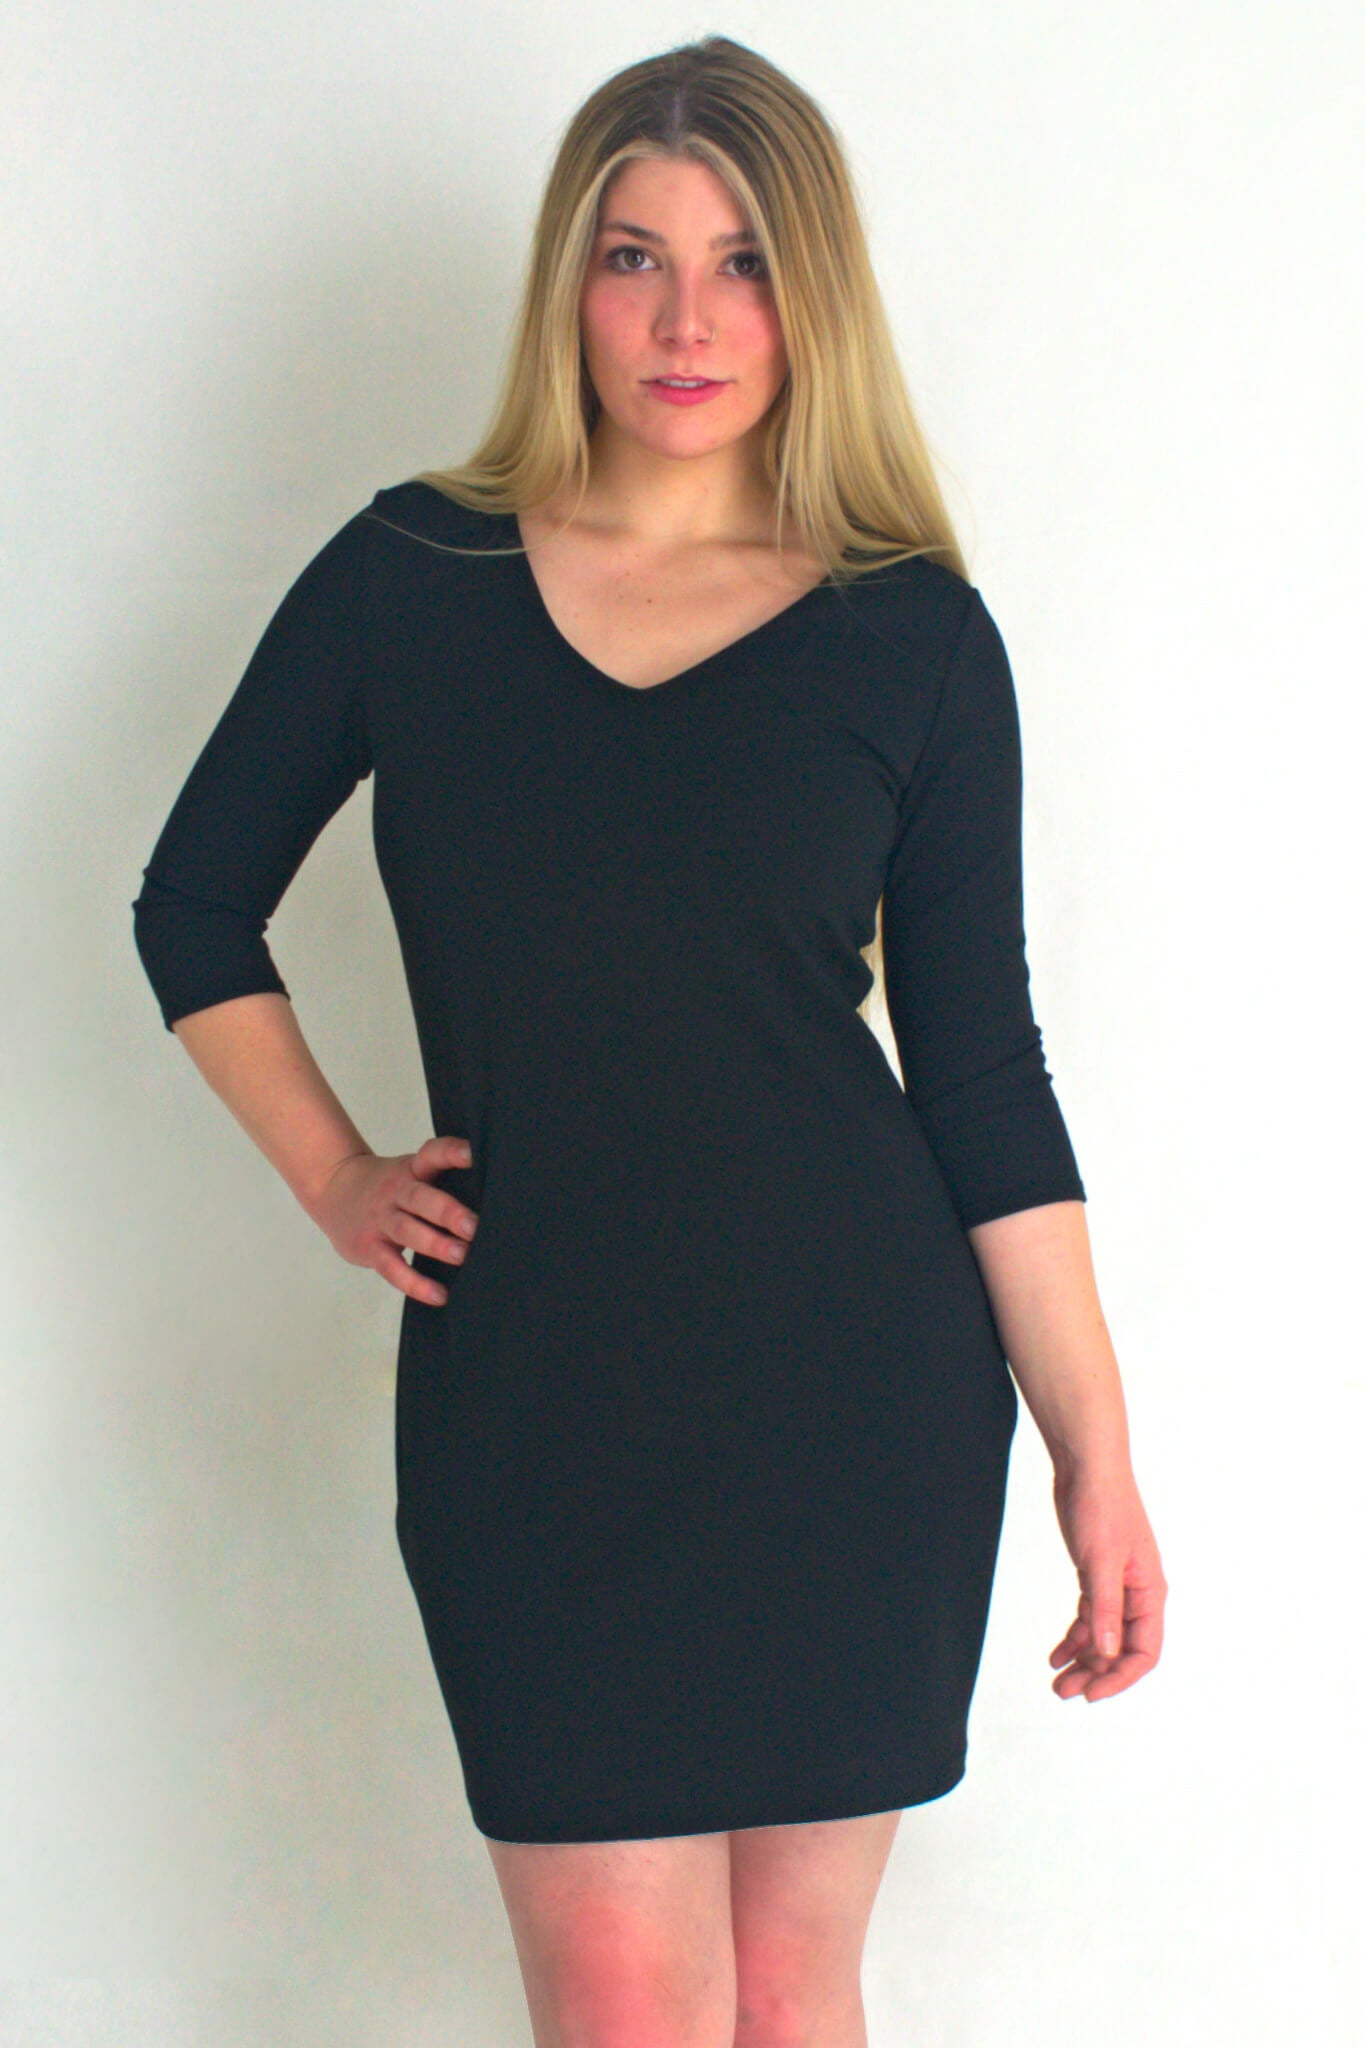 V Neck Dress with 3/4 Sleeves - Black